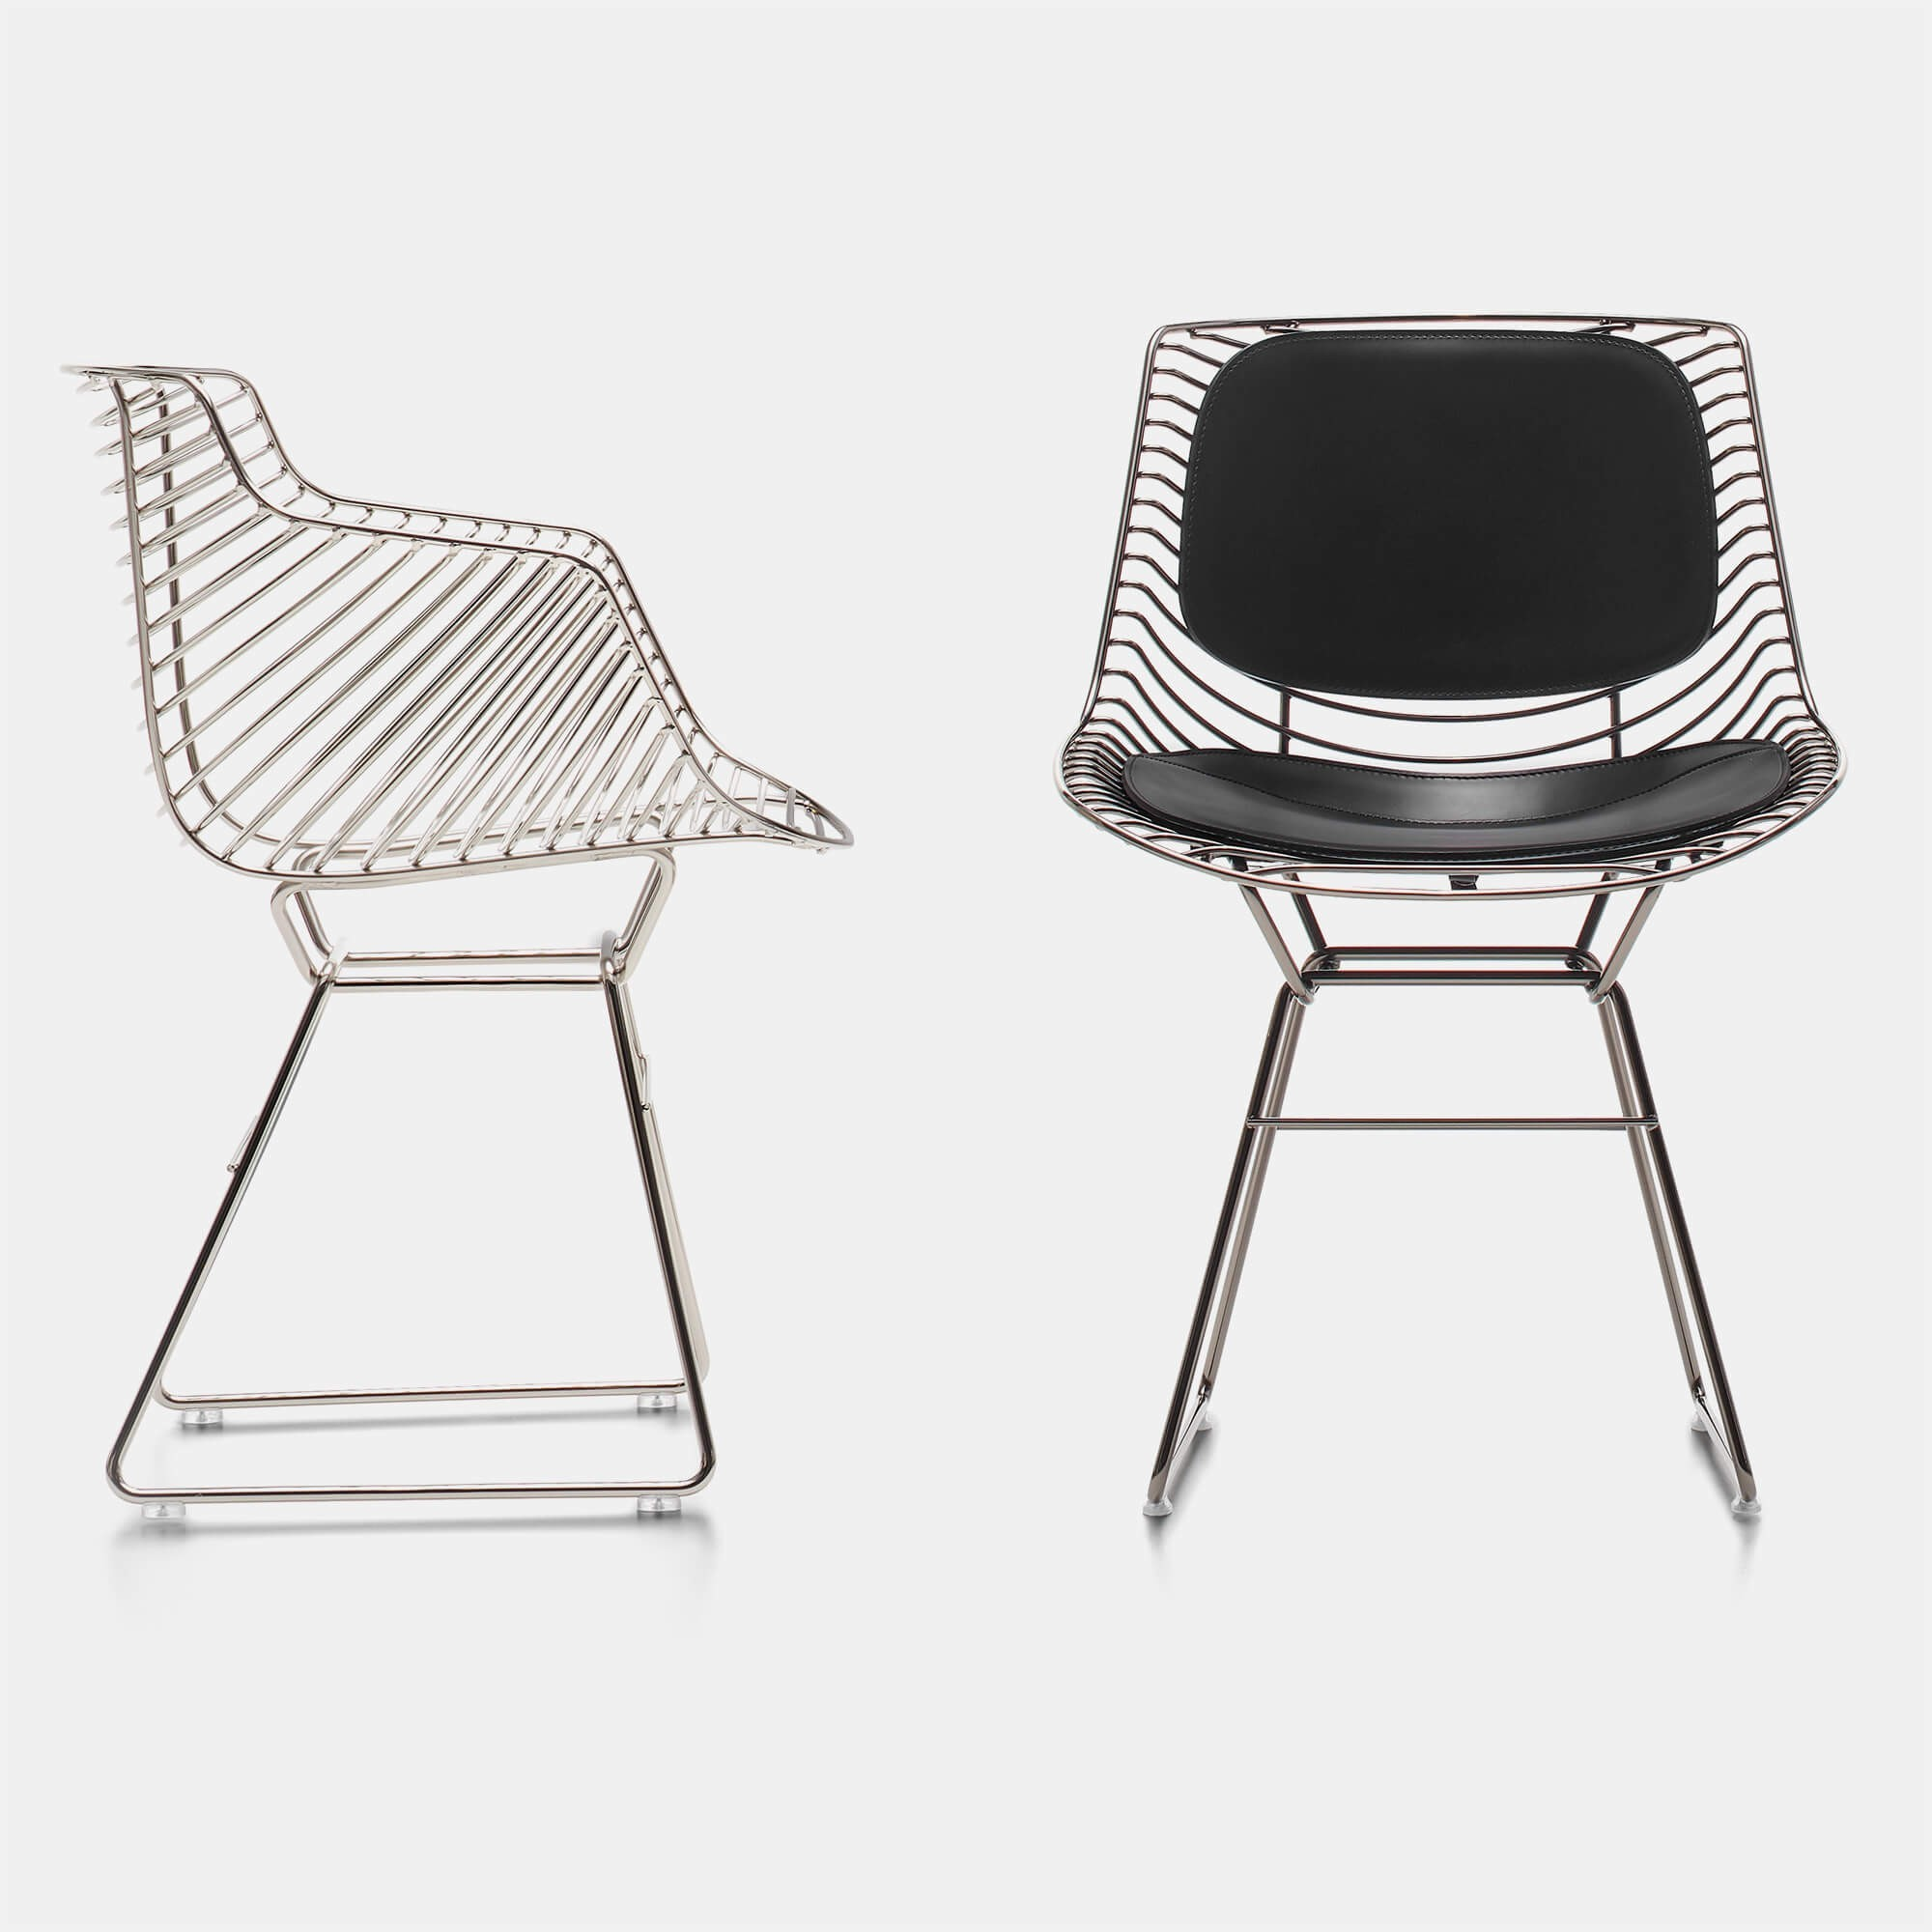 Flow Filo Indoor And Outdoor Chair Made Up Of A Steel Wire Mdf Italia